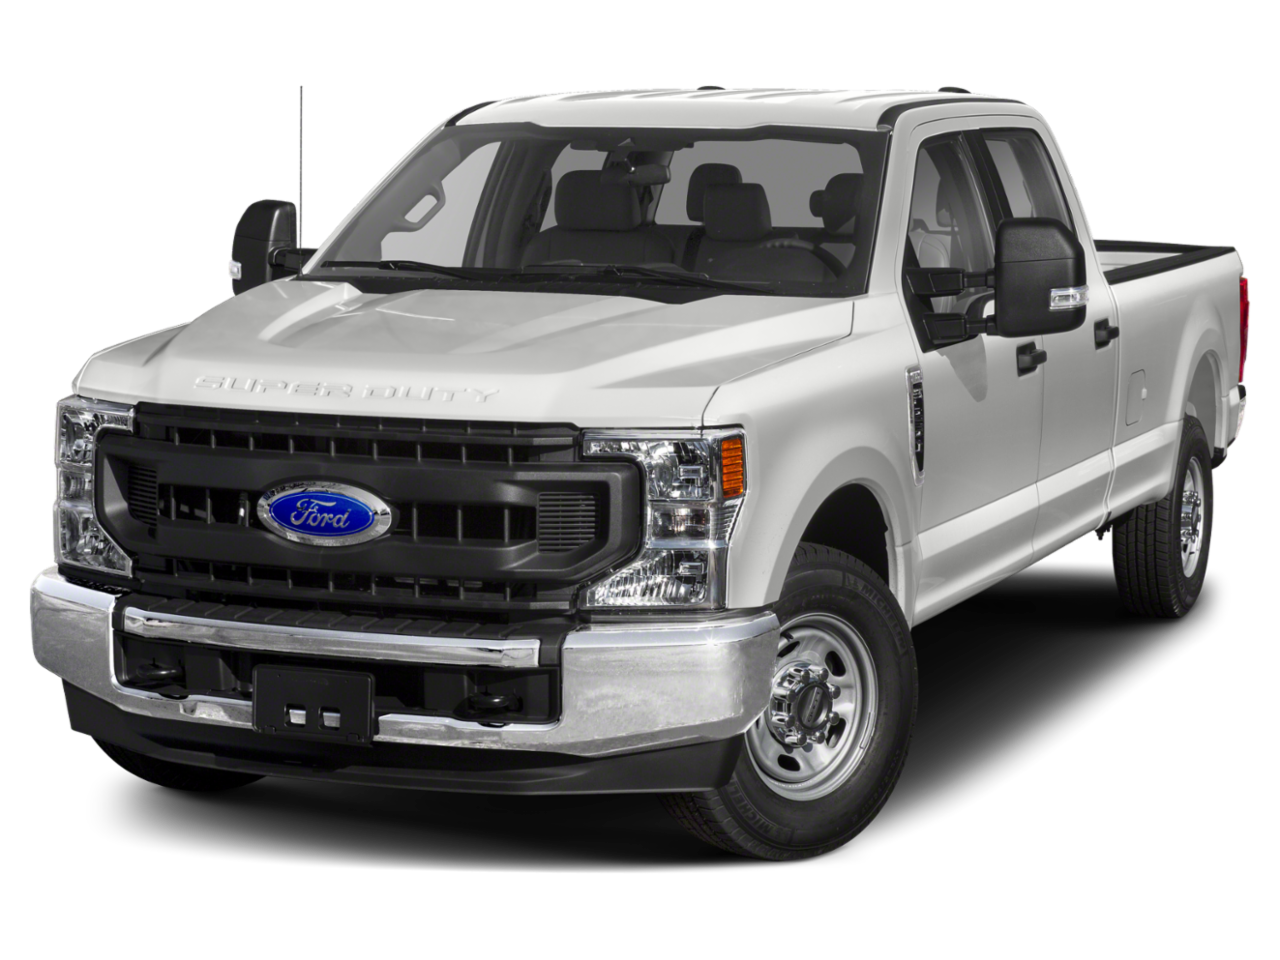 2021 Ford Super Duty F-250 SRW XL Crew Cab Pickup